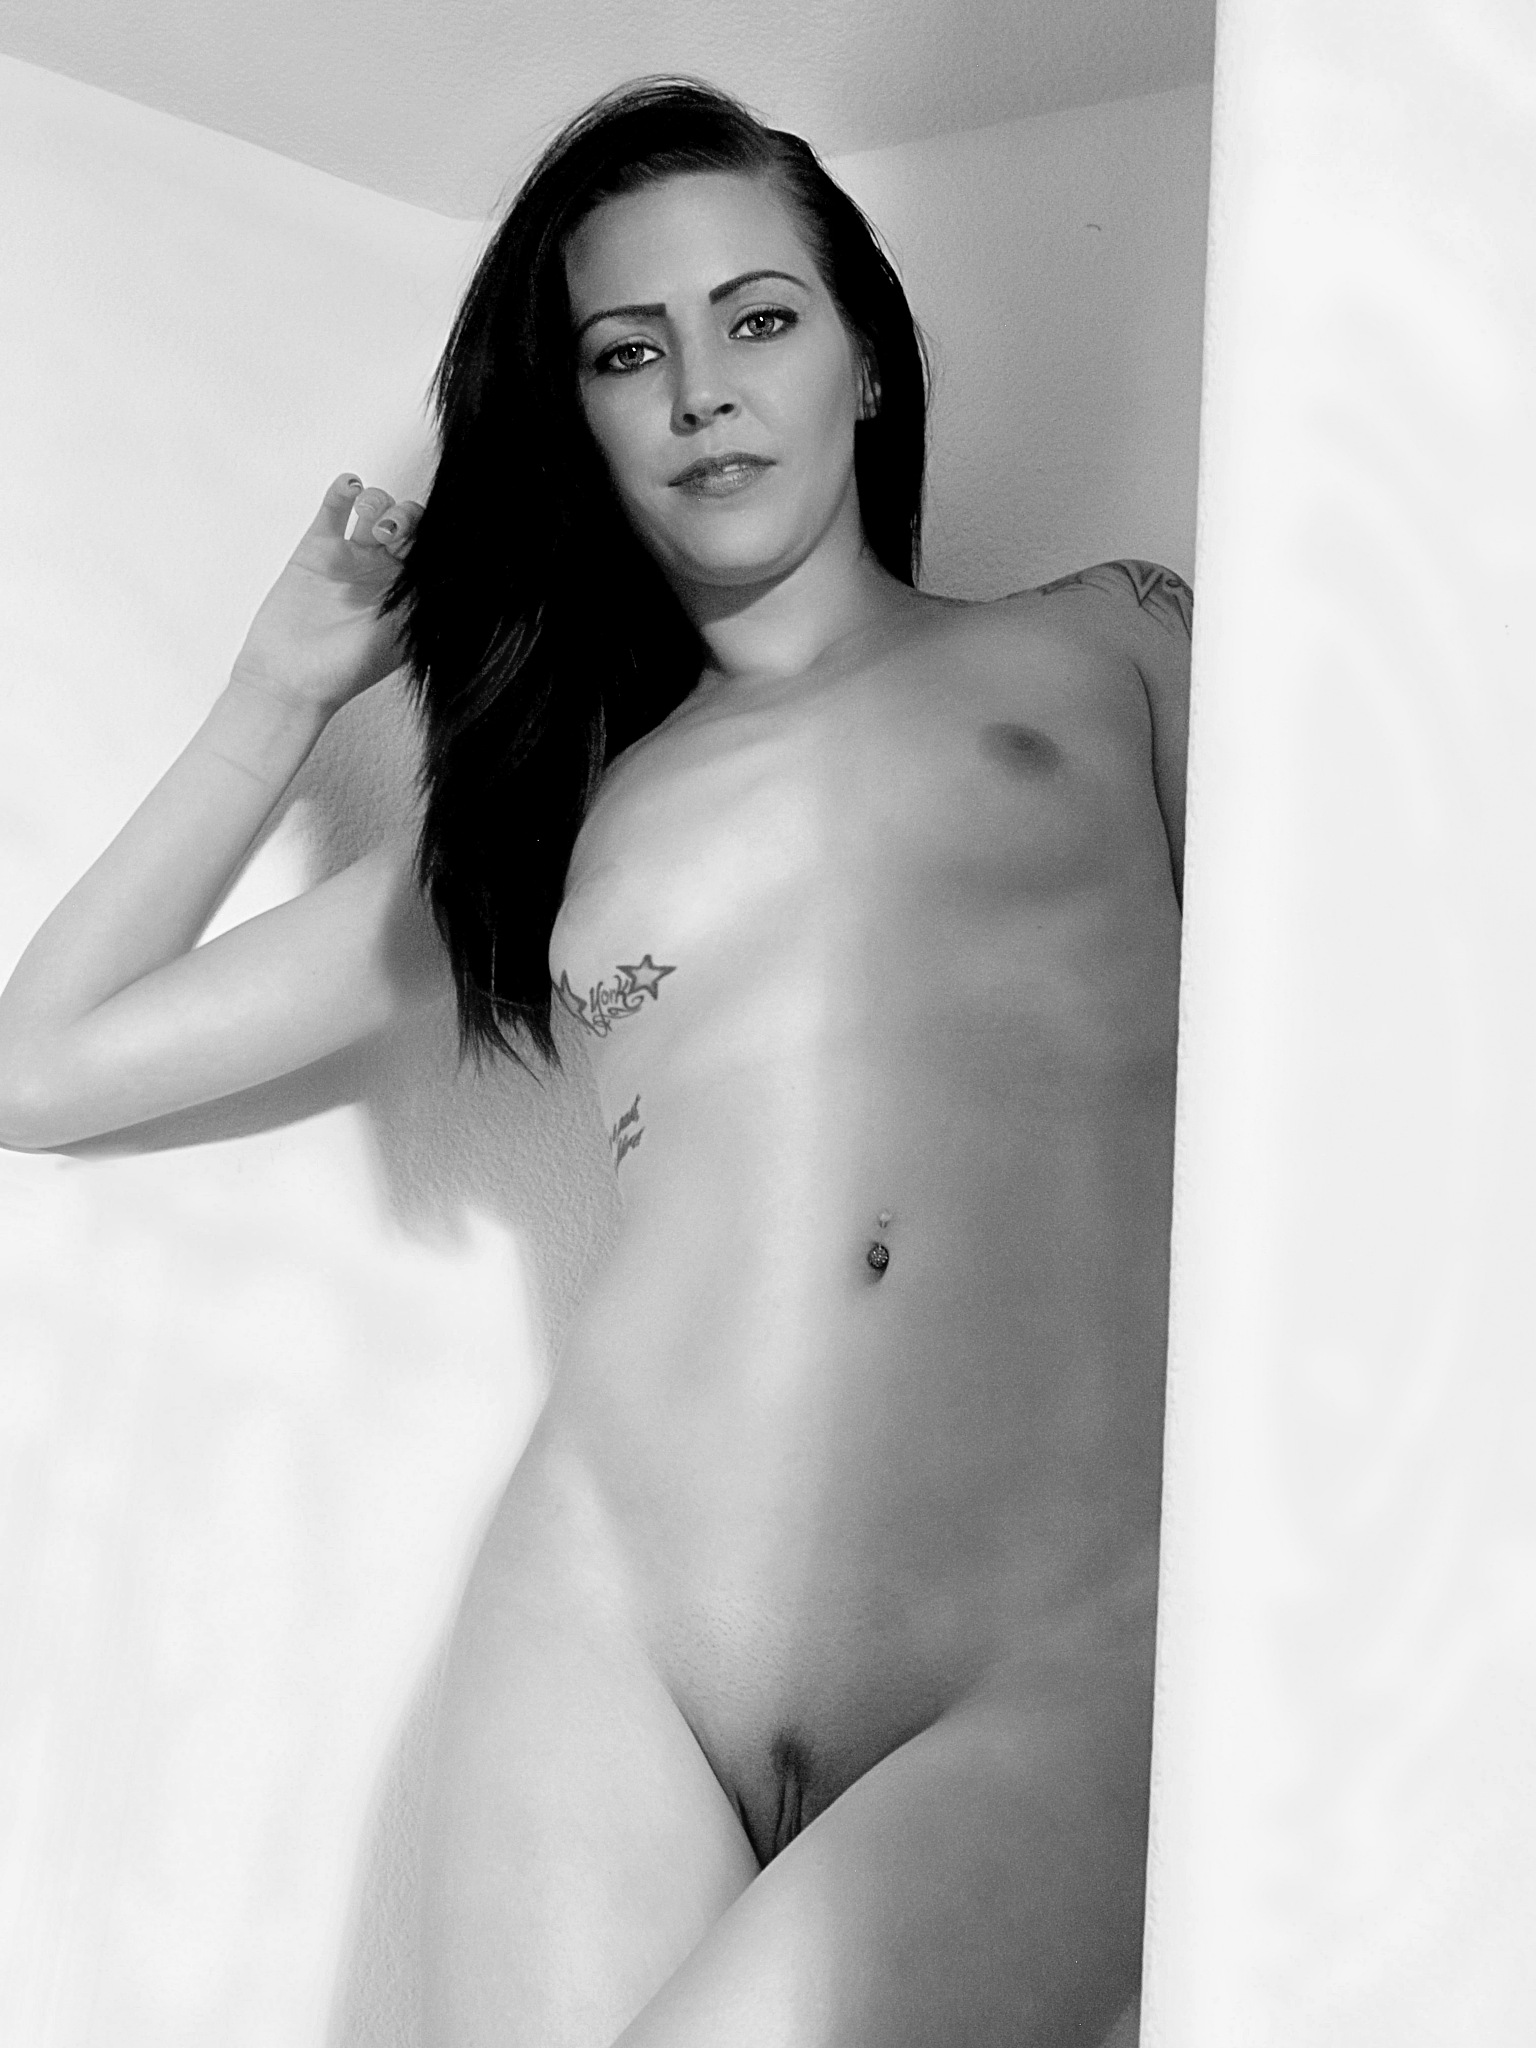 Ashley 5306 by swhiteimages